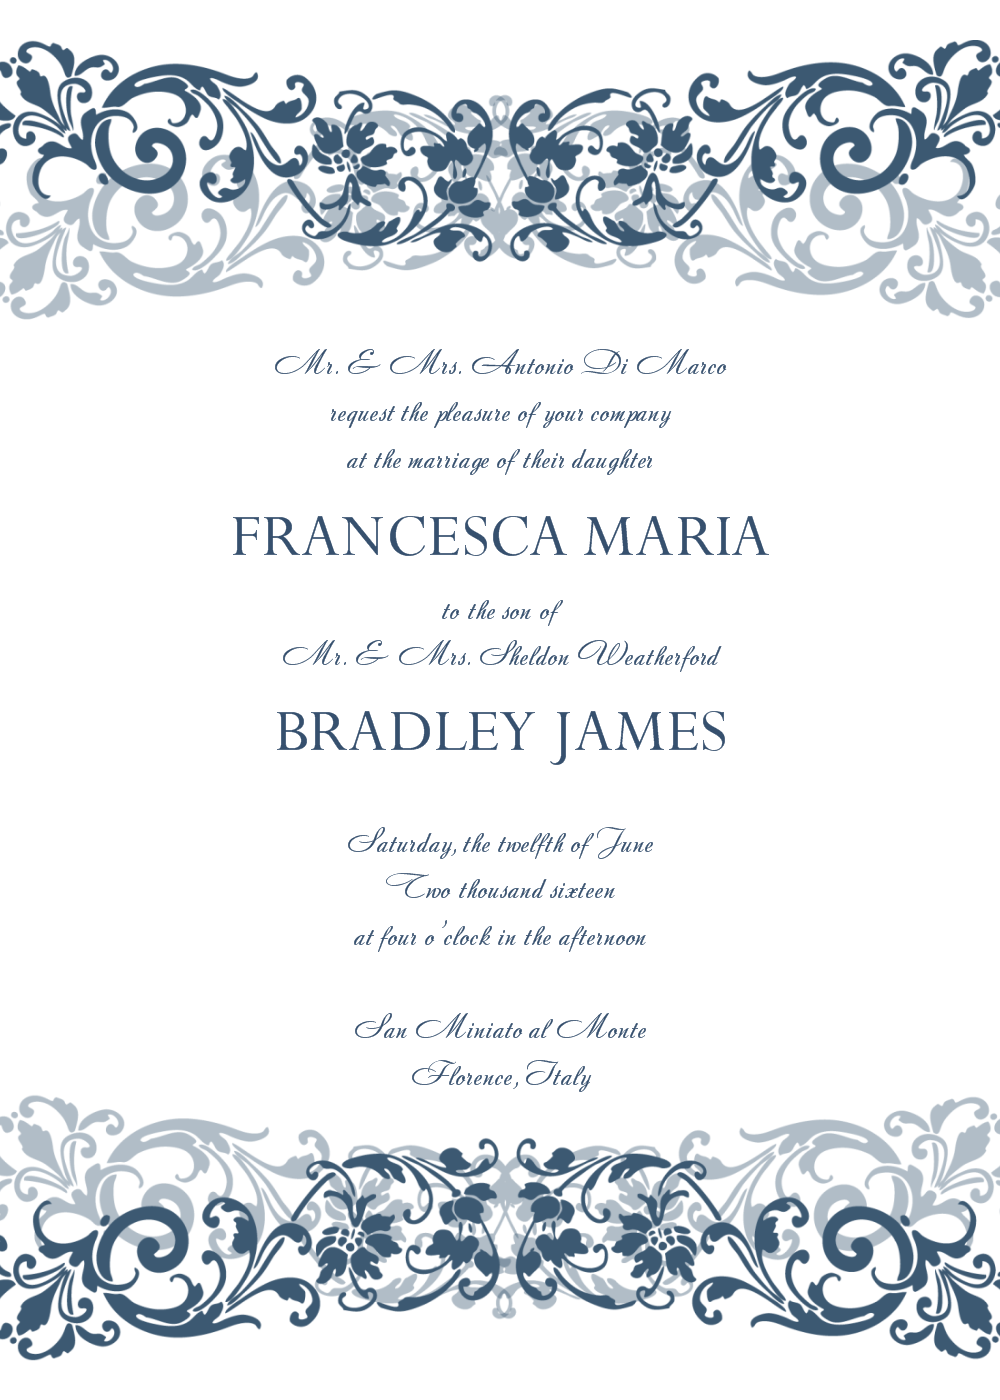 Blank Wedding Invitation Templates | Signatures by Sarah: Wedding ...